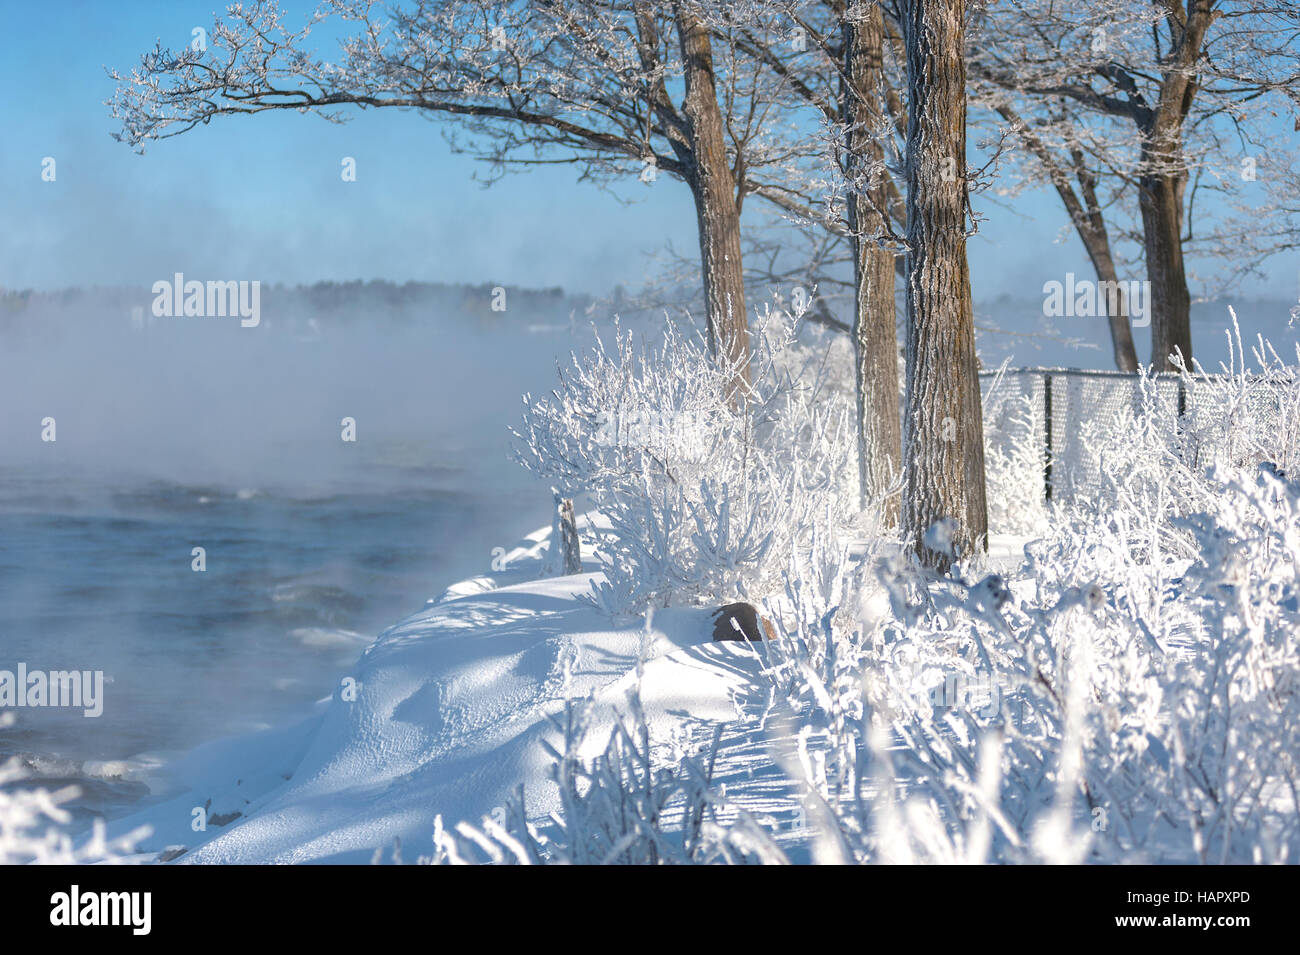 Winter on the River - Stock Image